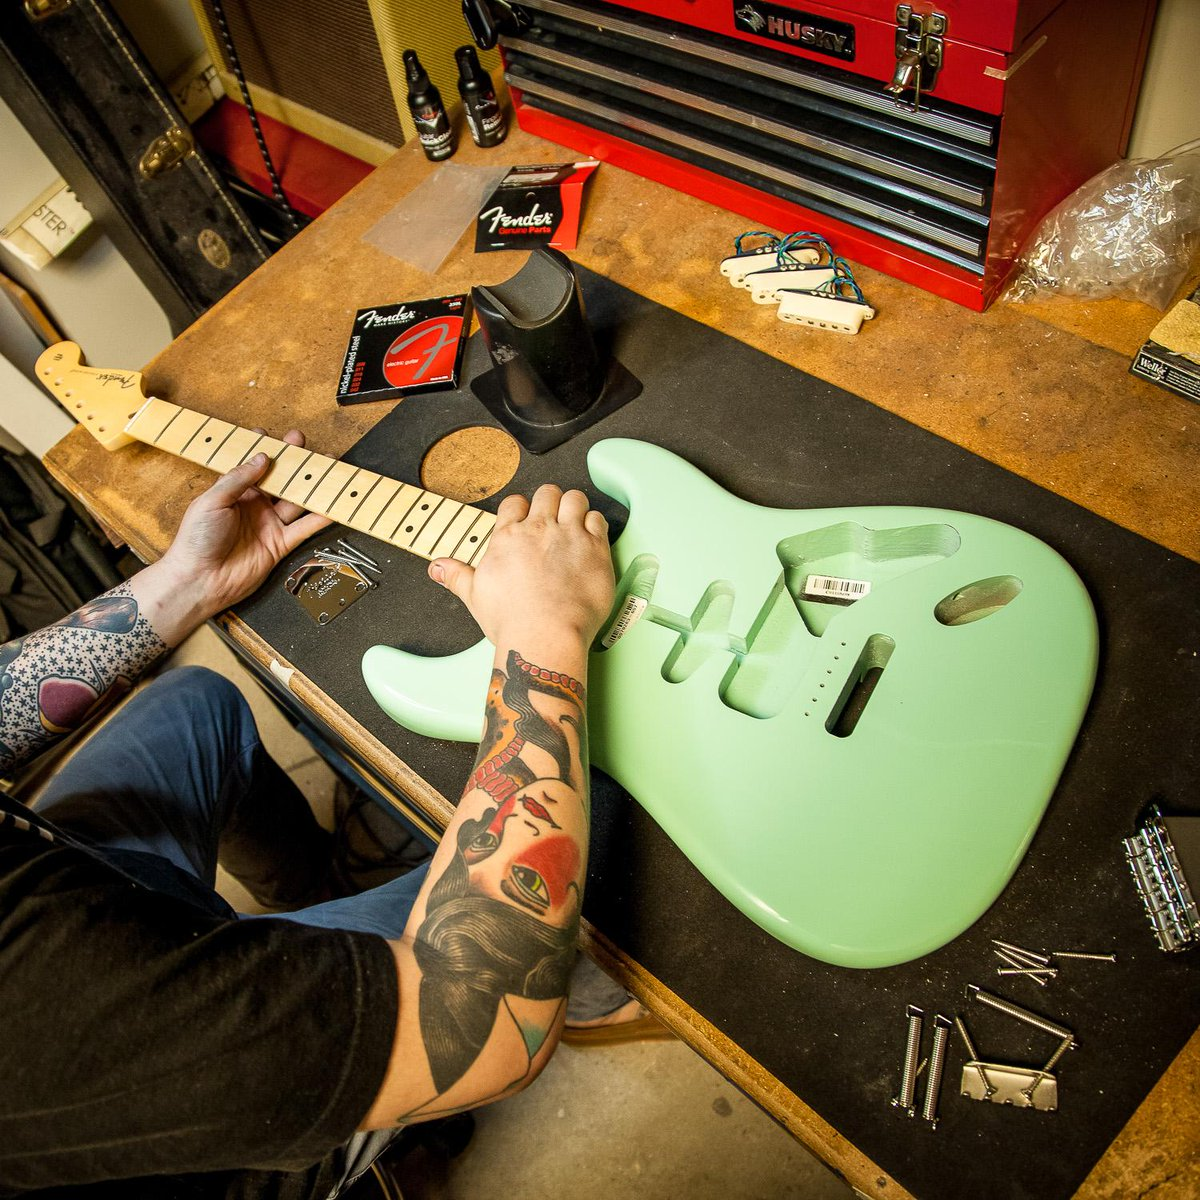 Fender On Twitter Electric Guitar Parts Restore The Legacy Http Tco Sssgkqg2rg Sjmivirnp3